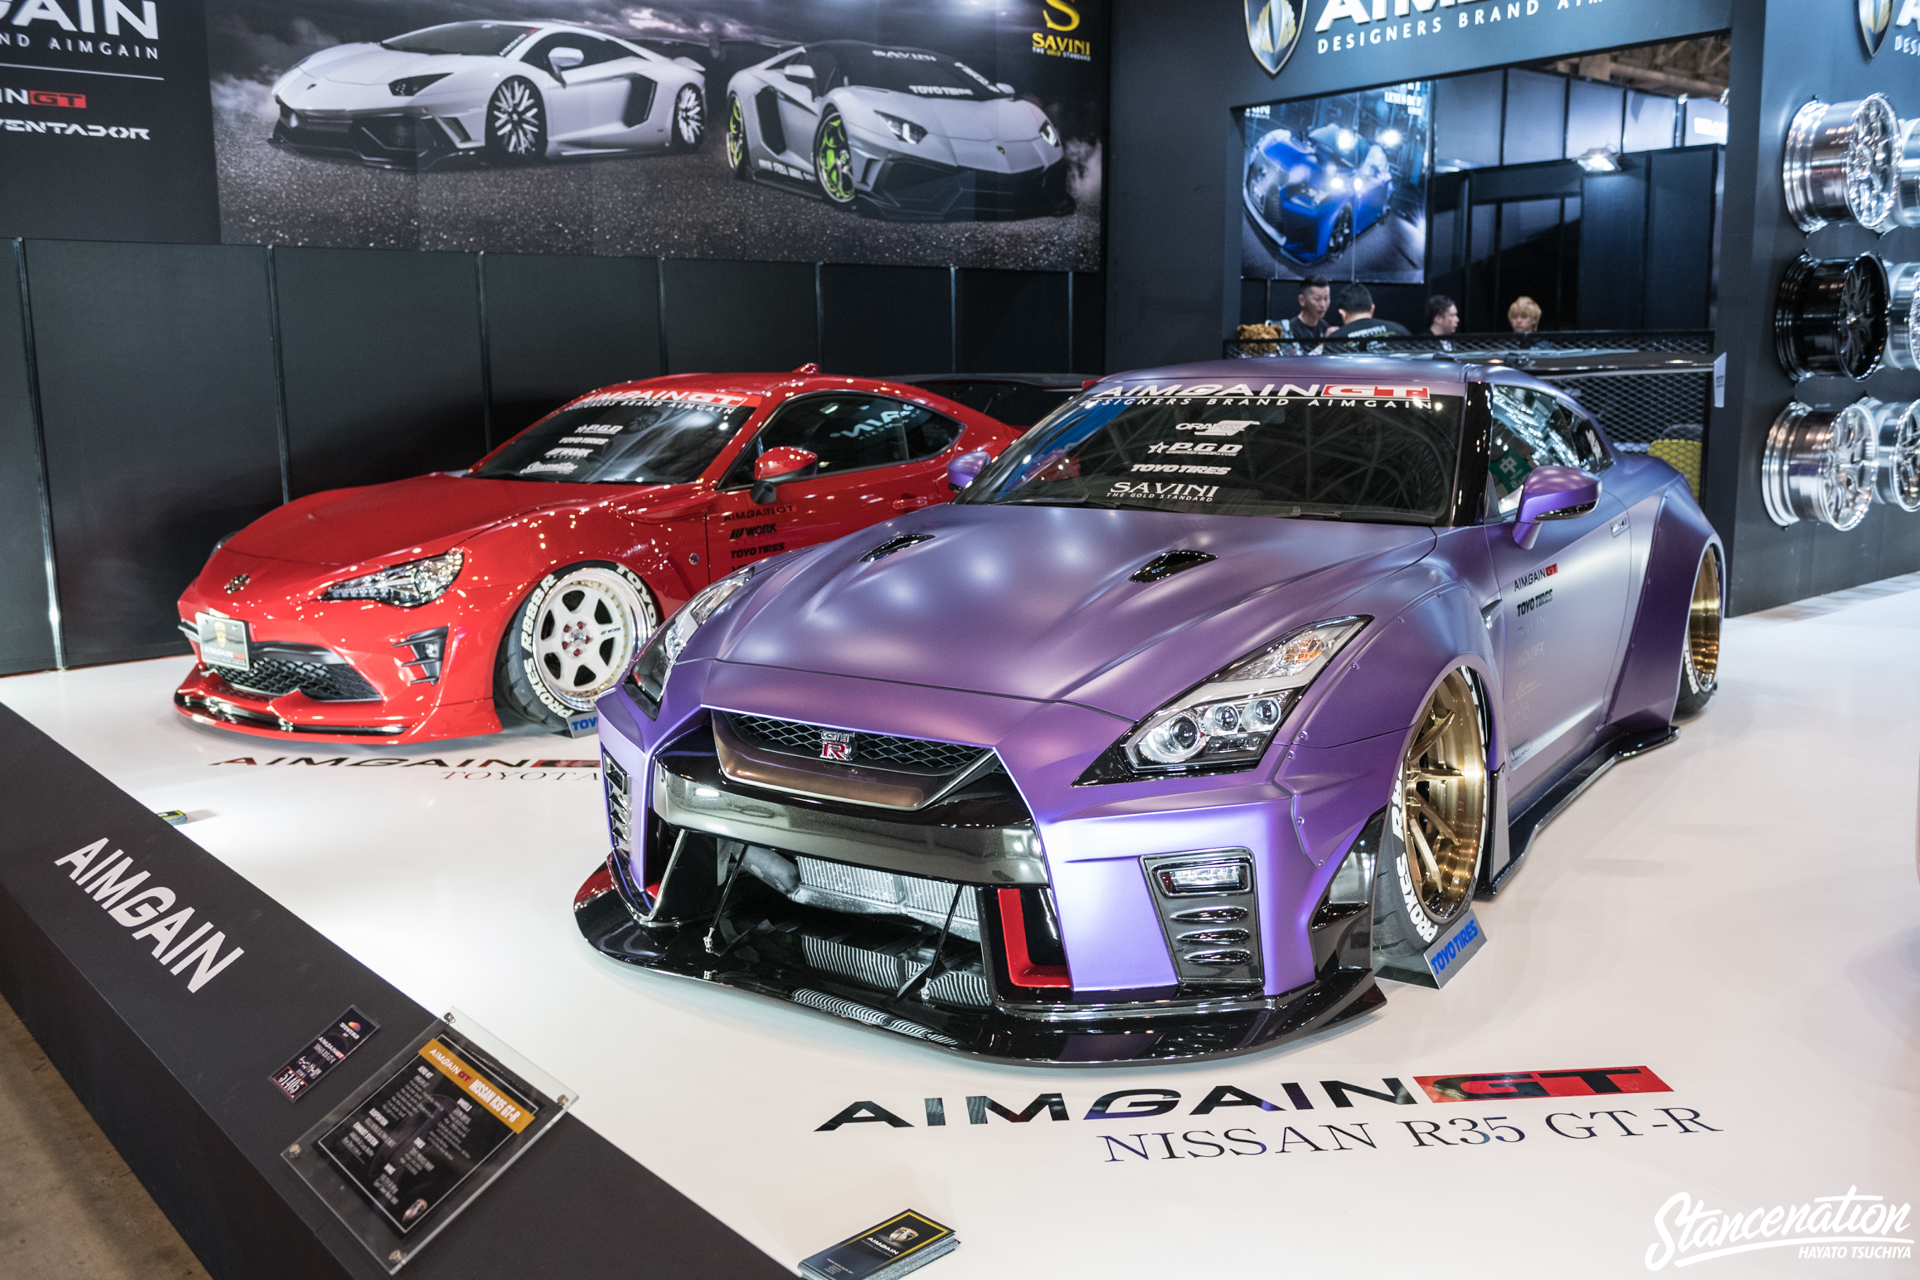 tokyo auto salon 2017 photo coverage part 2 anything cars the car enthusiasts. Black Bedroom Furniture Sets. Home Design Ideas